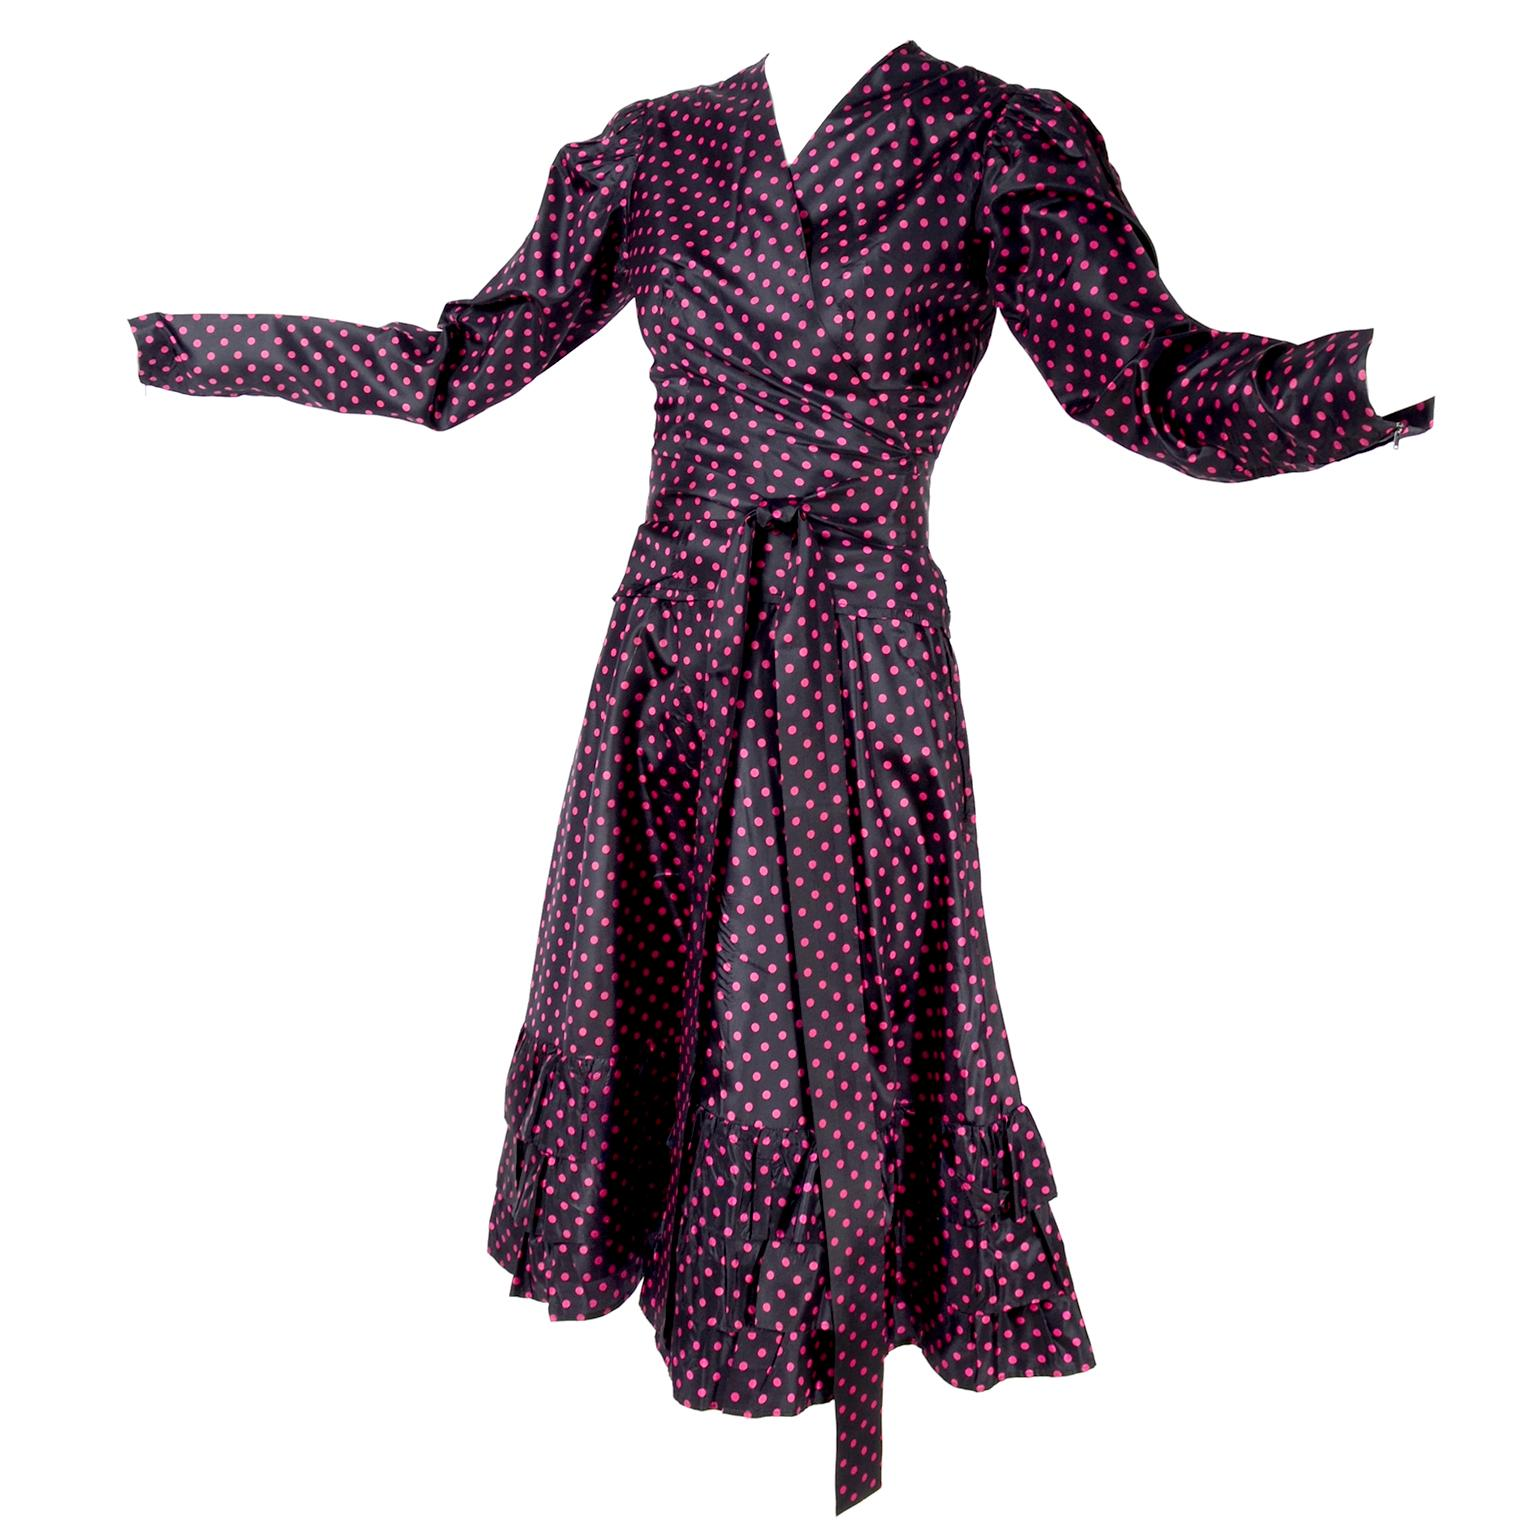 6756811e305 Vintage Yves Saint Laurent Evening Dresses and Gowns - 321 For Sale at  1stdibs